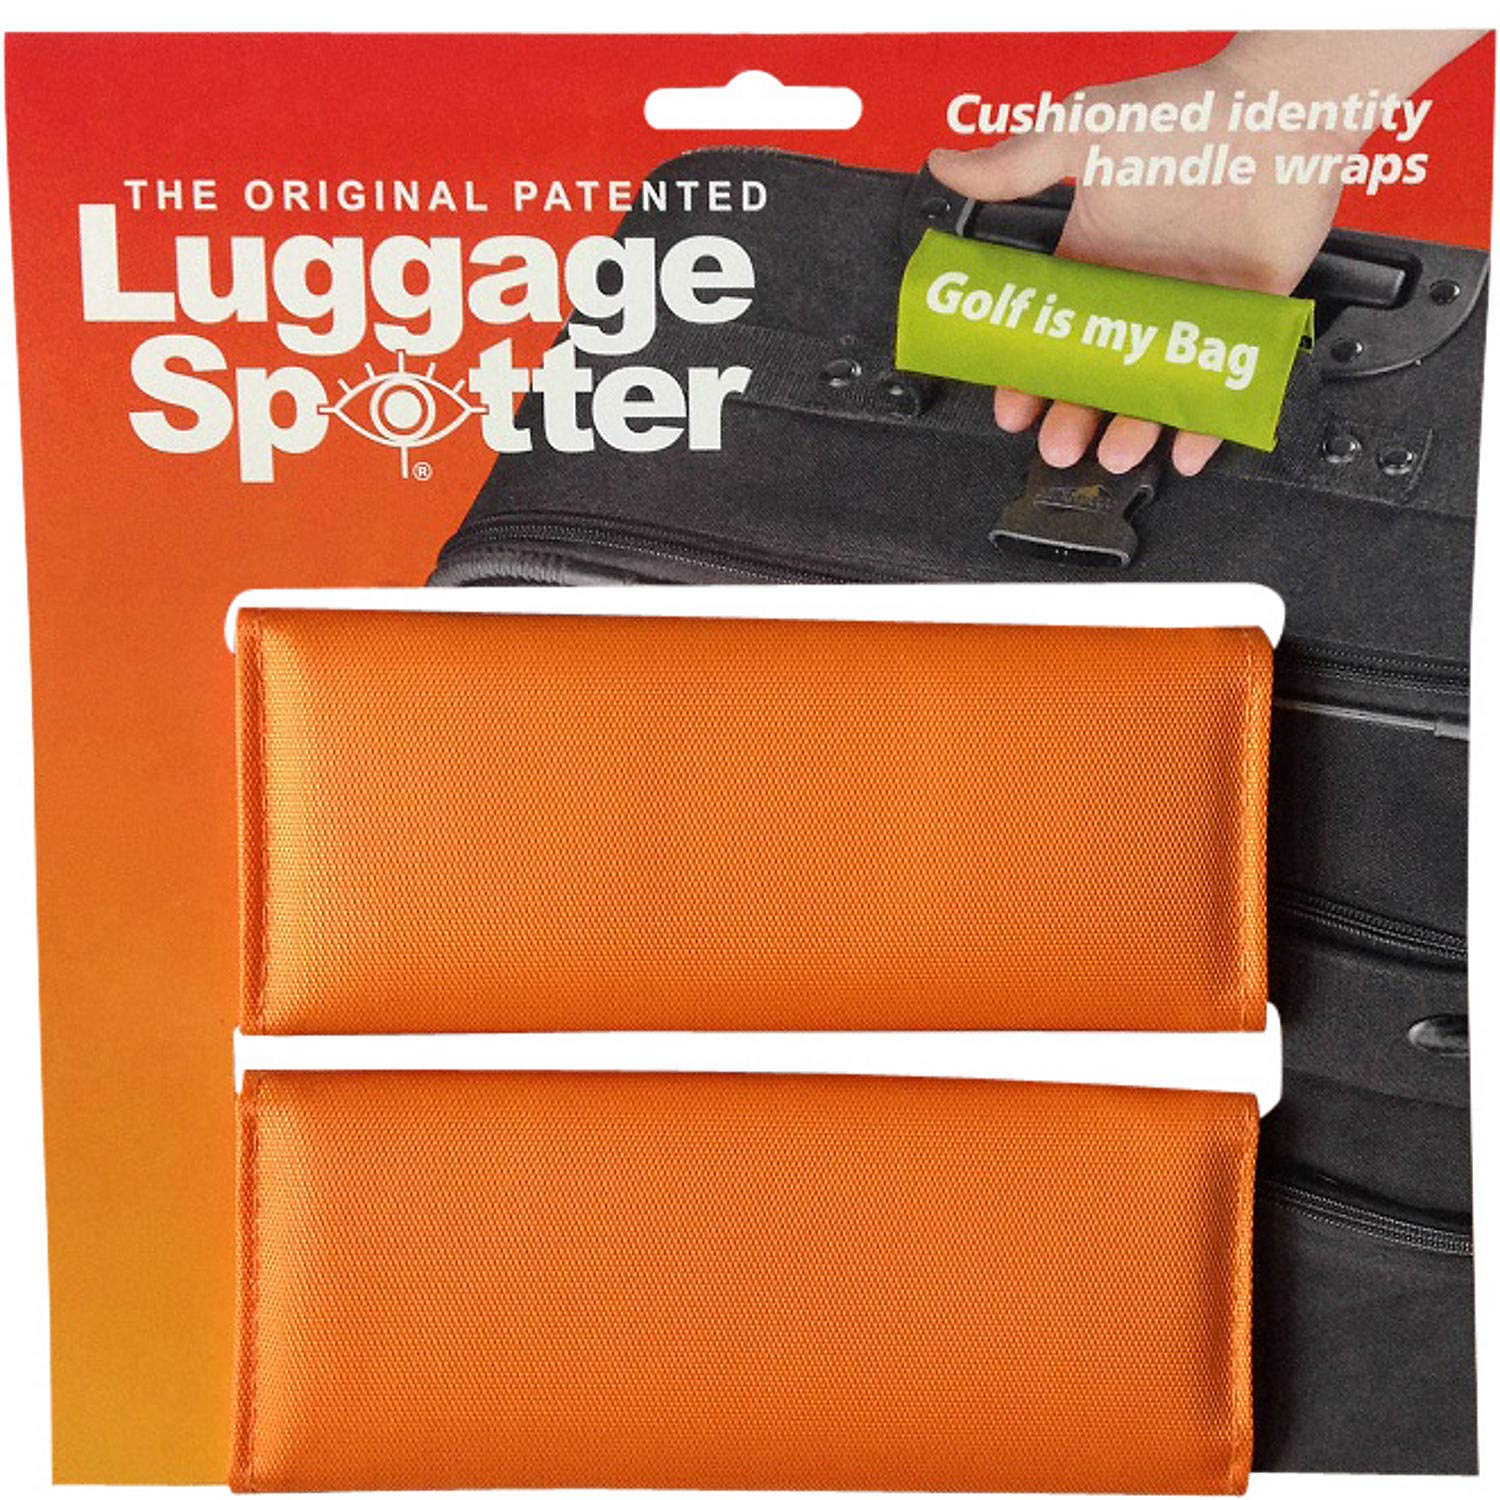 Luggage Spotter ORANGE Luggage Locator/Handle Grip/Luggage Grip/Travel Bag Tag/Luggage Handle Wrap (2 PACK)